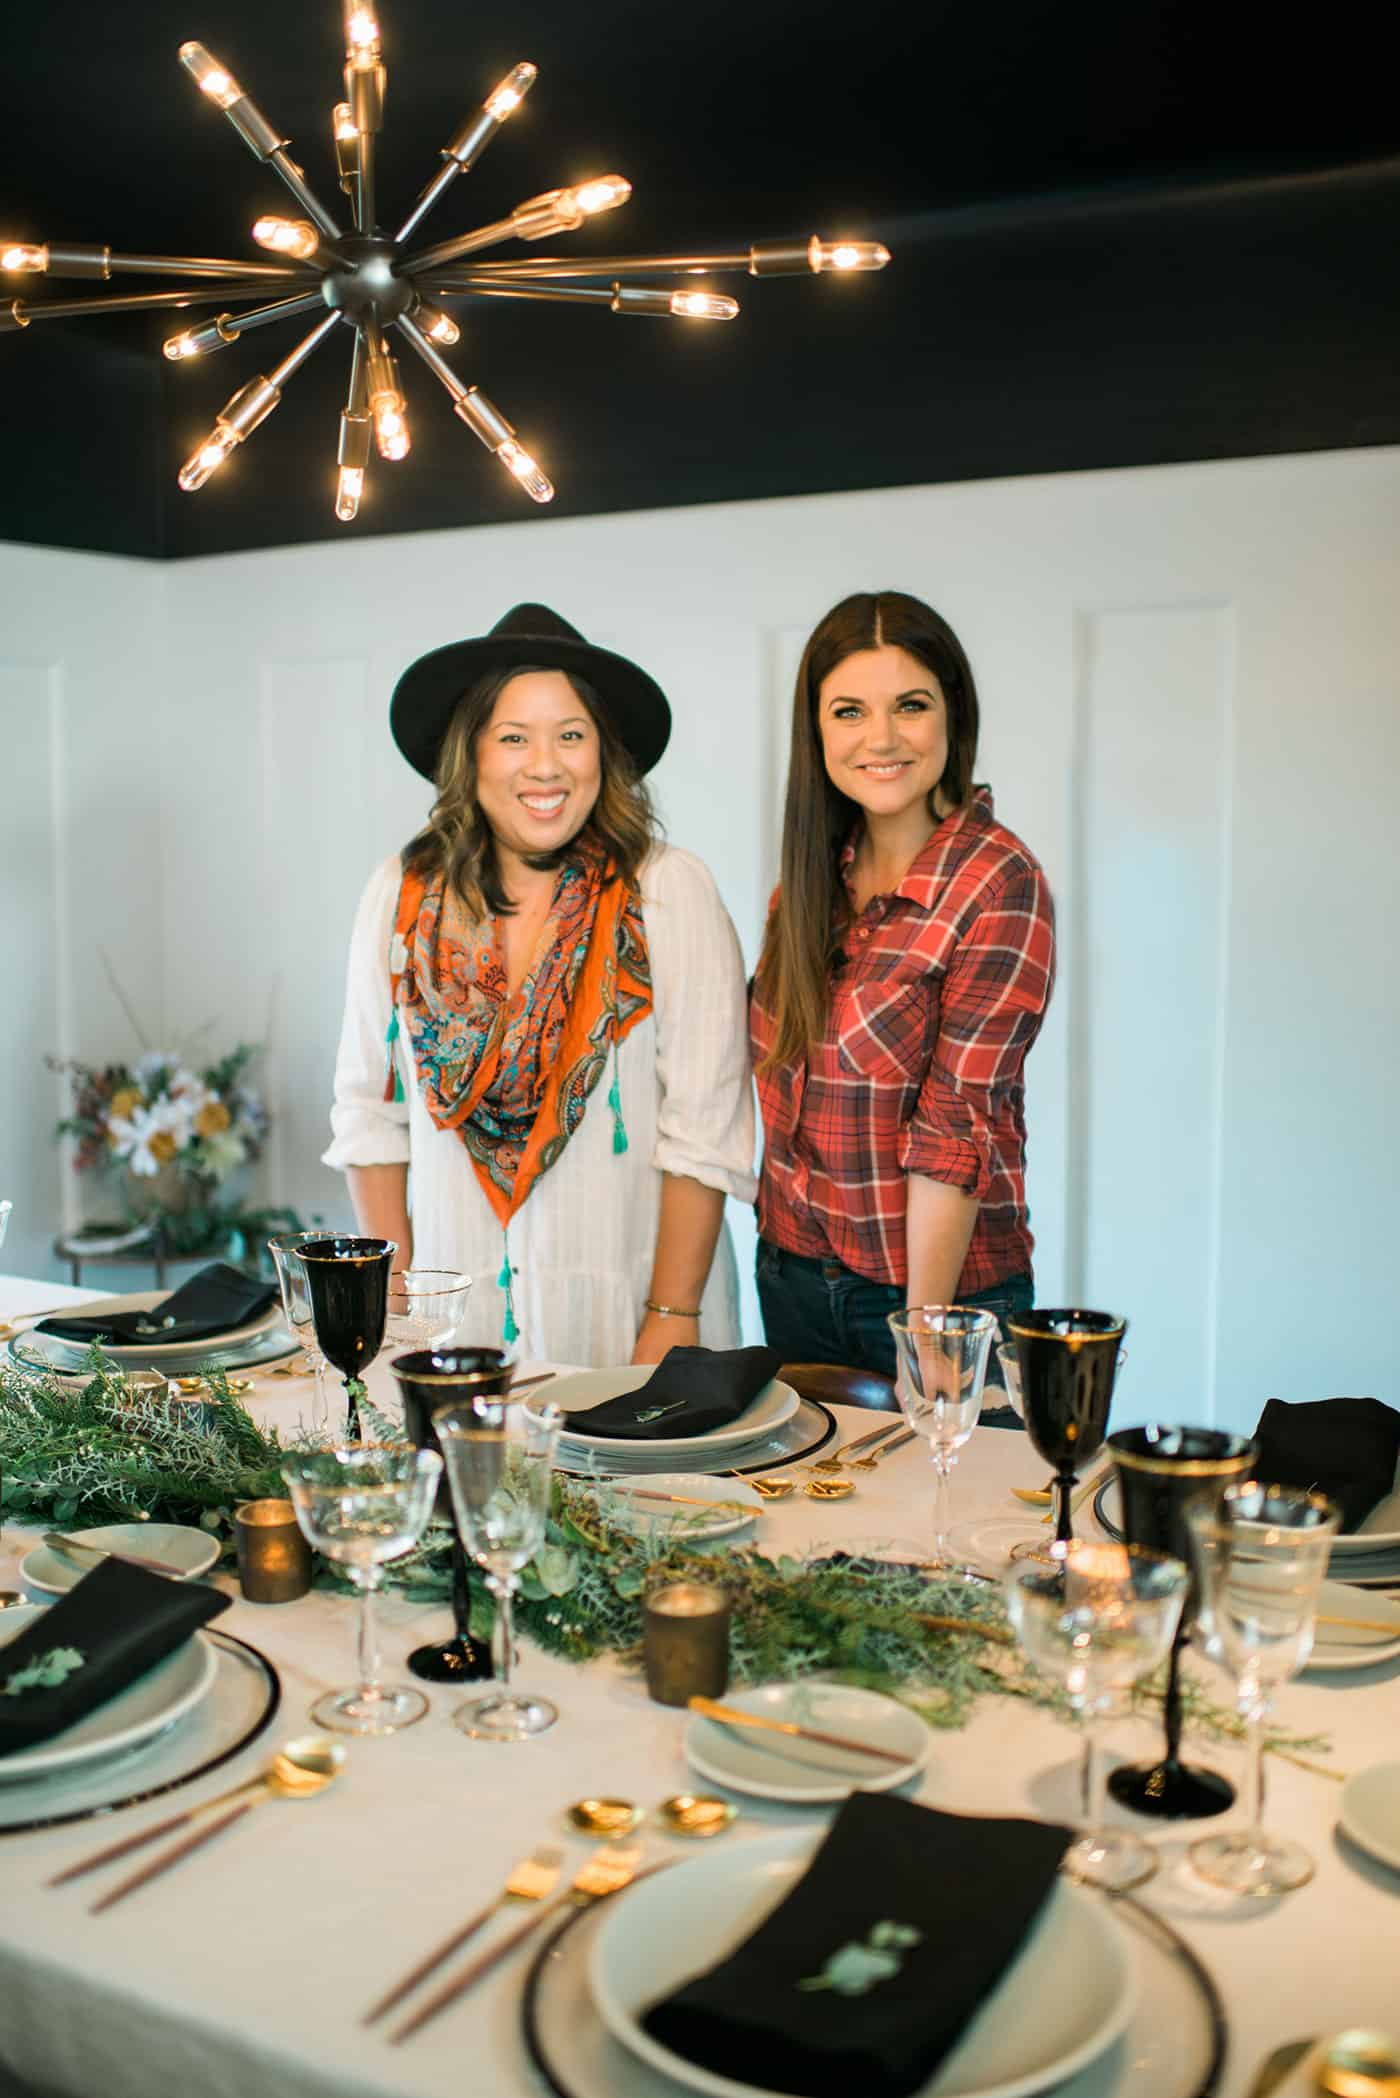 Holiday Greenery with Tiffani Thiessen & The Crown Collective